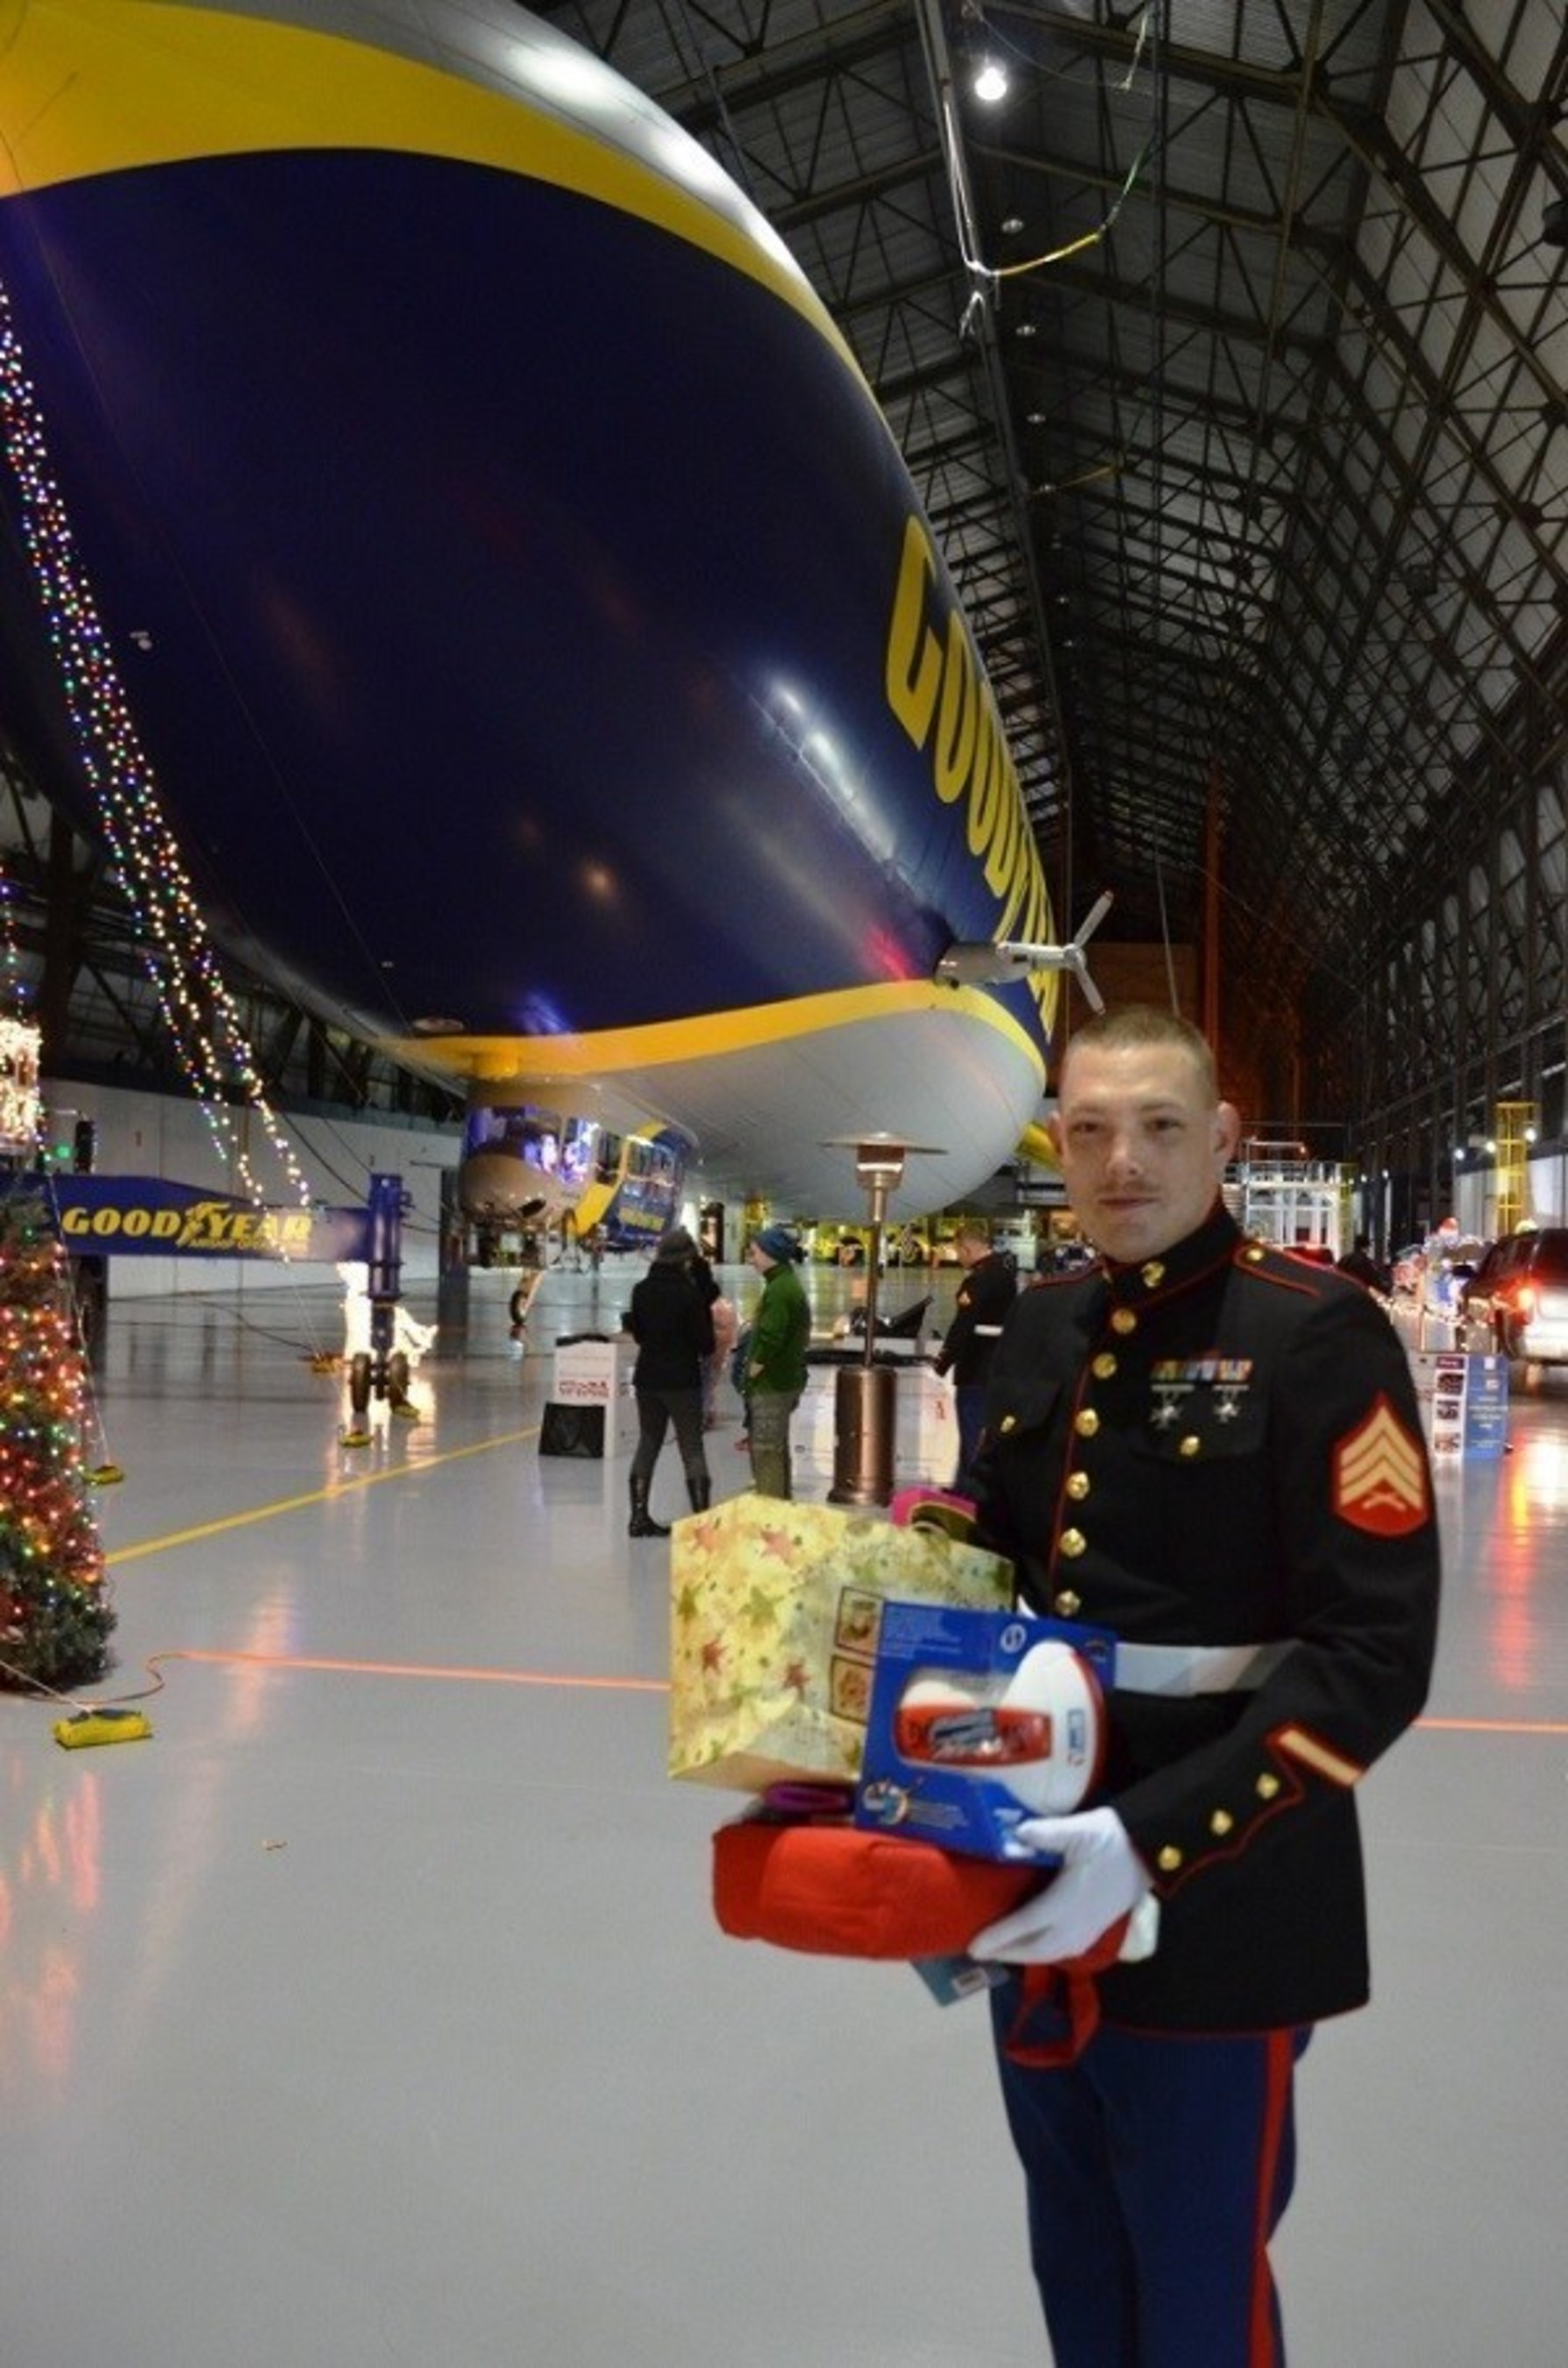 U.S. Marine Sgt. Richard Radtke is all smiles during the 2014 Toys for Tots drive at the Goodyear blimp base in Suffield, Ohio. The Goodyear Tire & Rubber Company's three U.S. blimp bases are gearing up for their fifth annual effort to benefit the Toys for Tots Foundation in 2015.